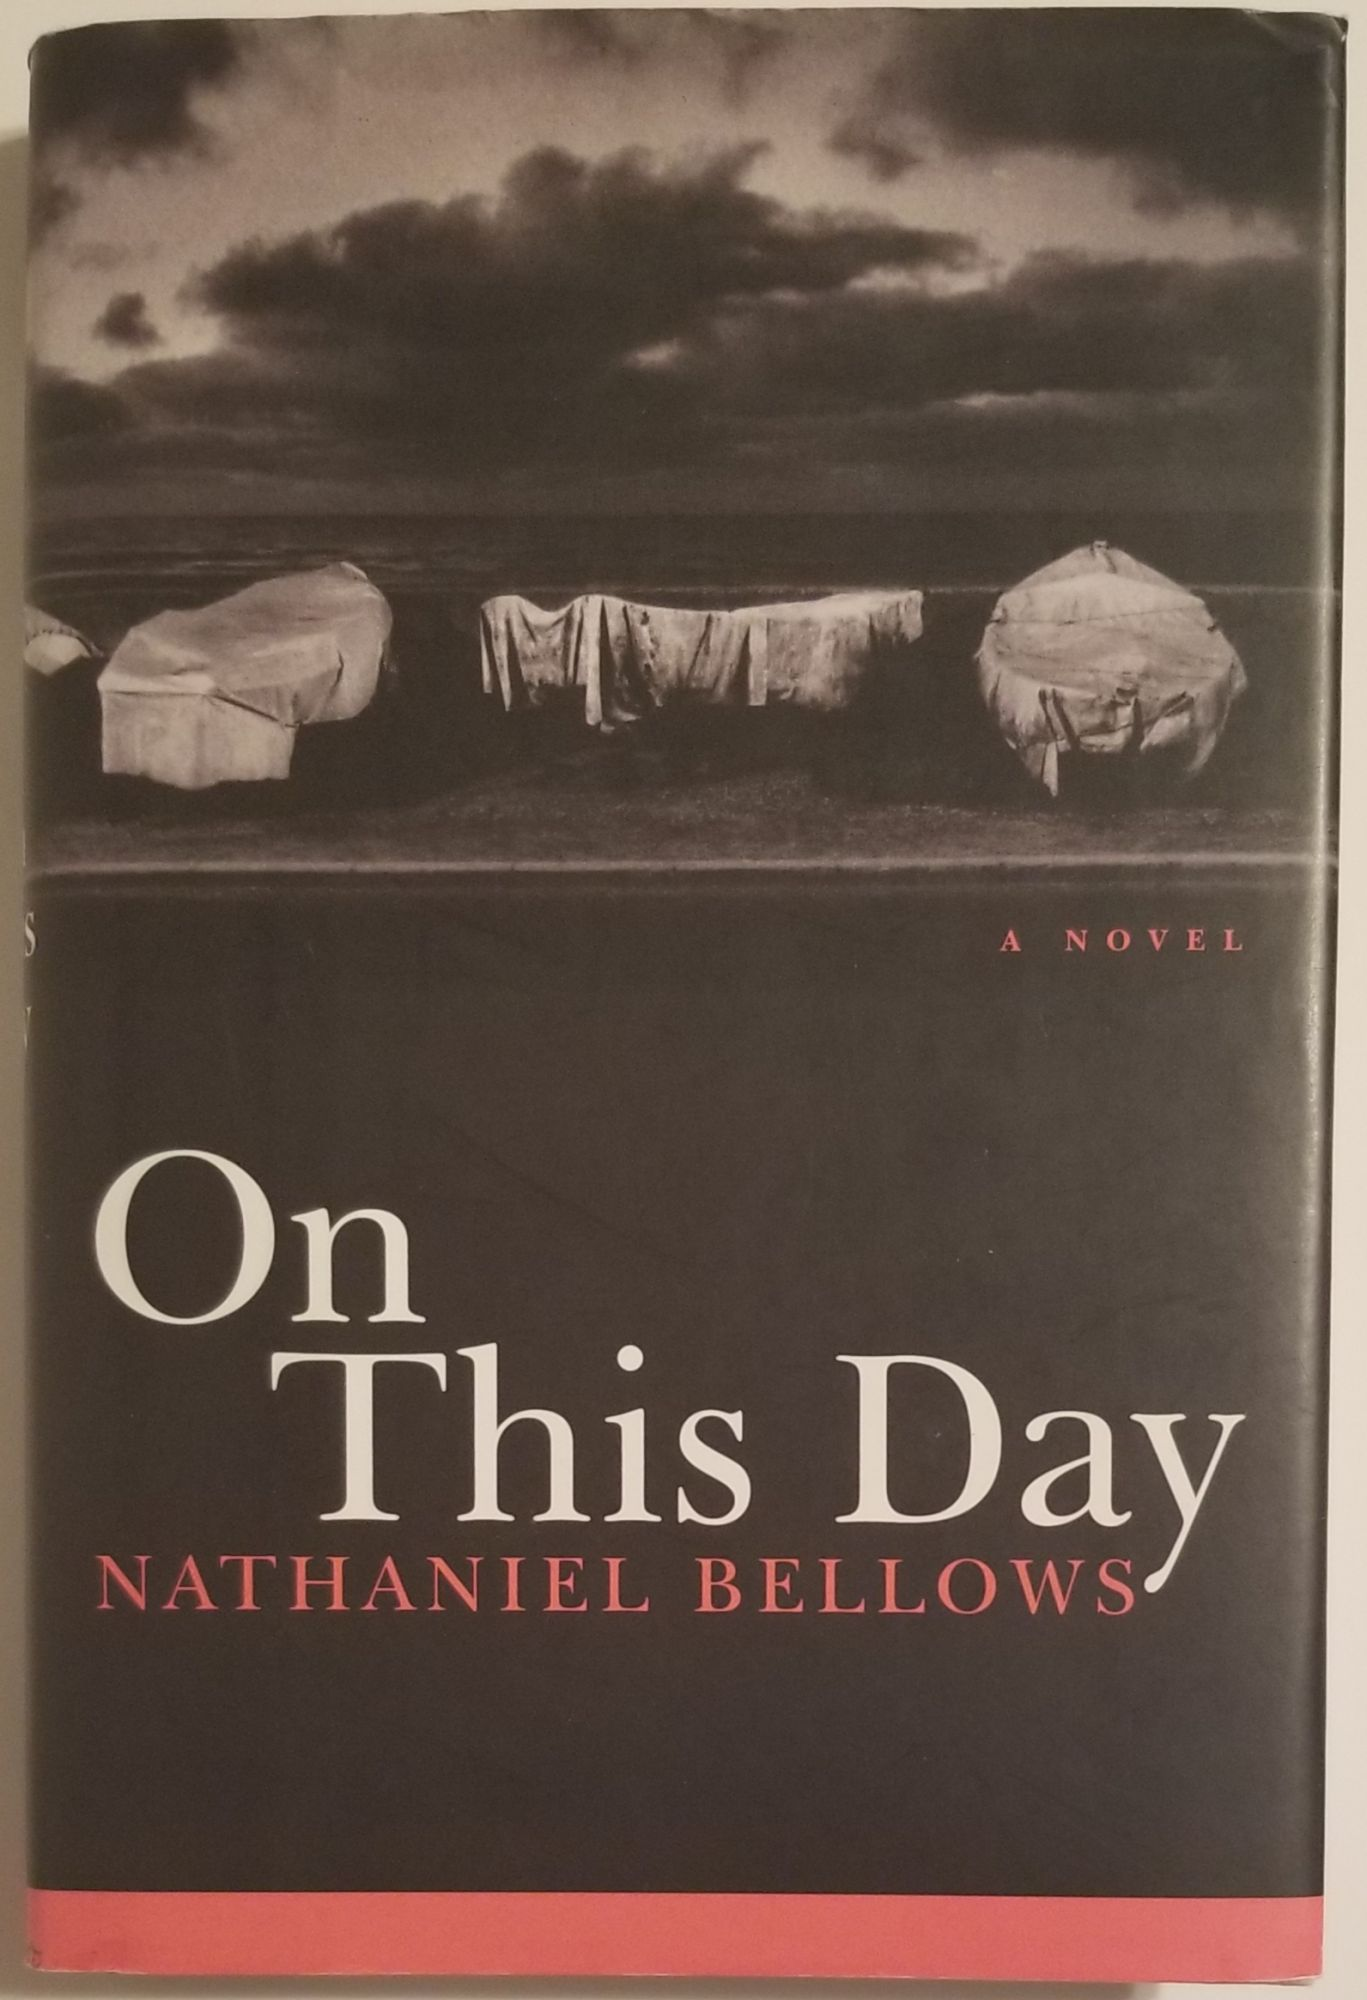 ON THIS DAY. Nathaniel Bellows.